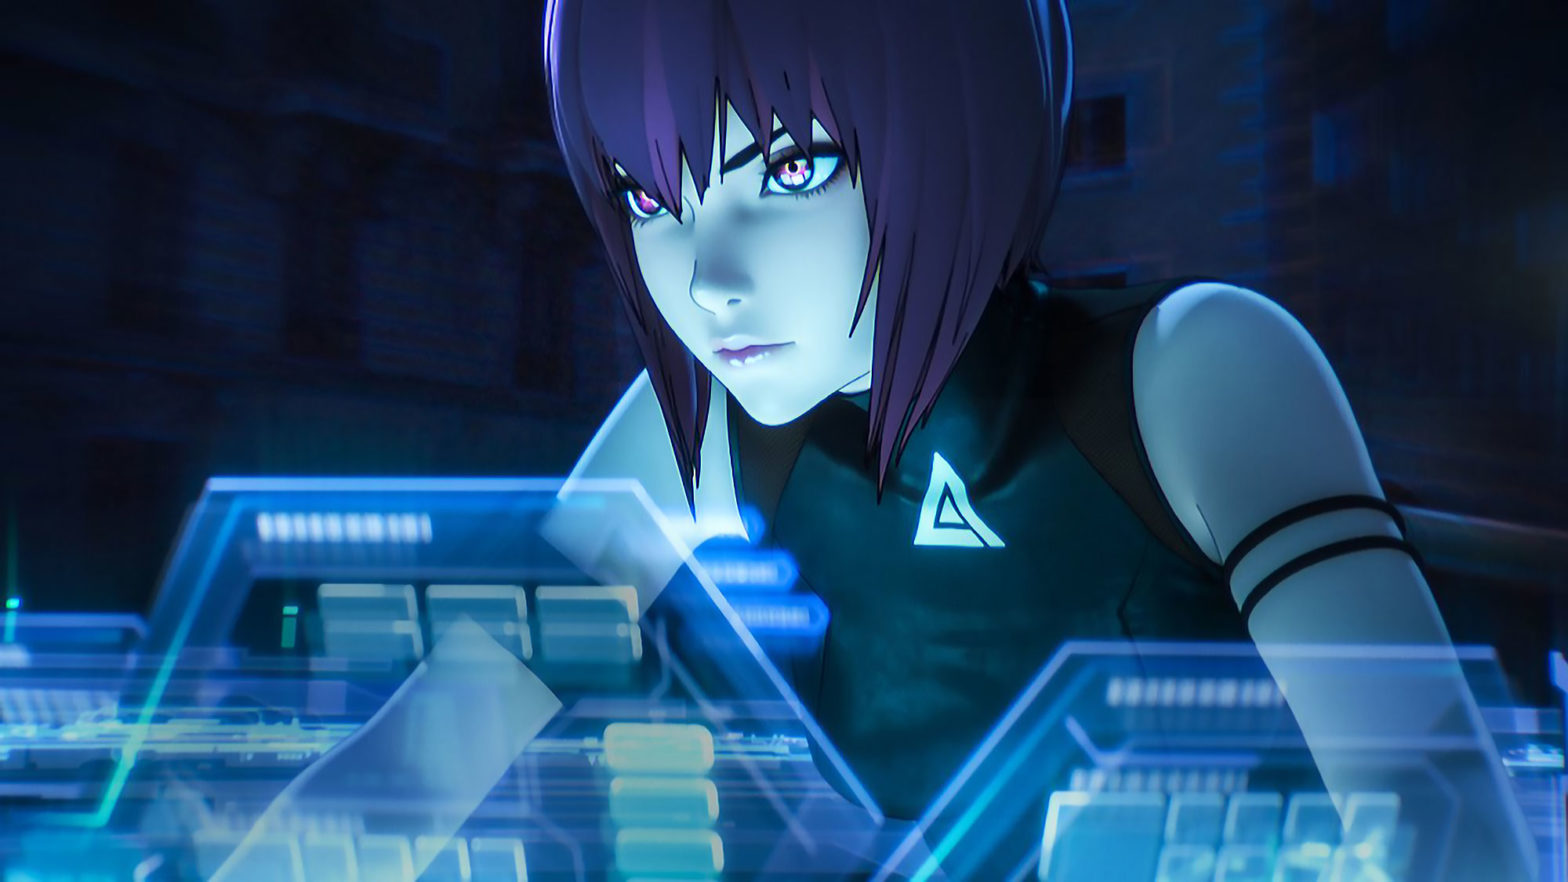 Ghost in the Shell SAC_2045 Animated Serie